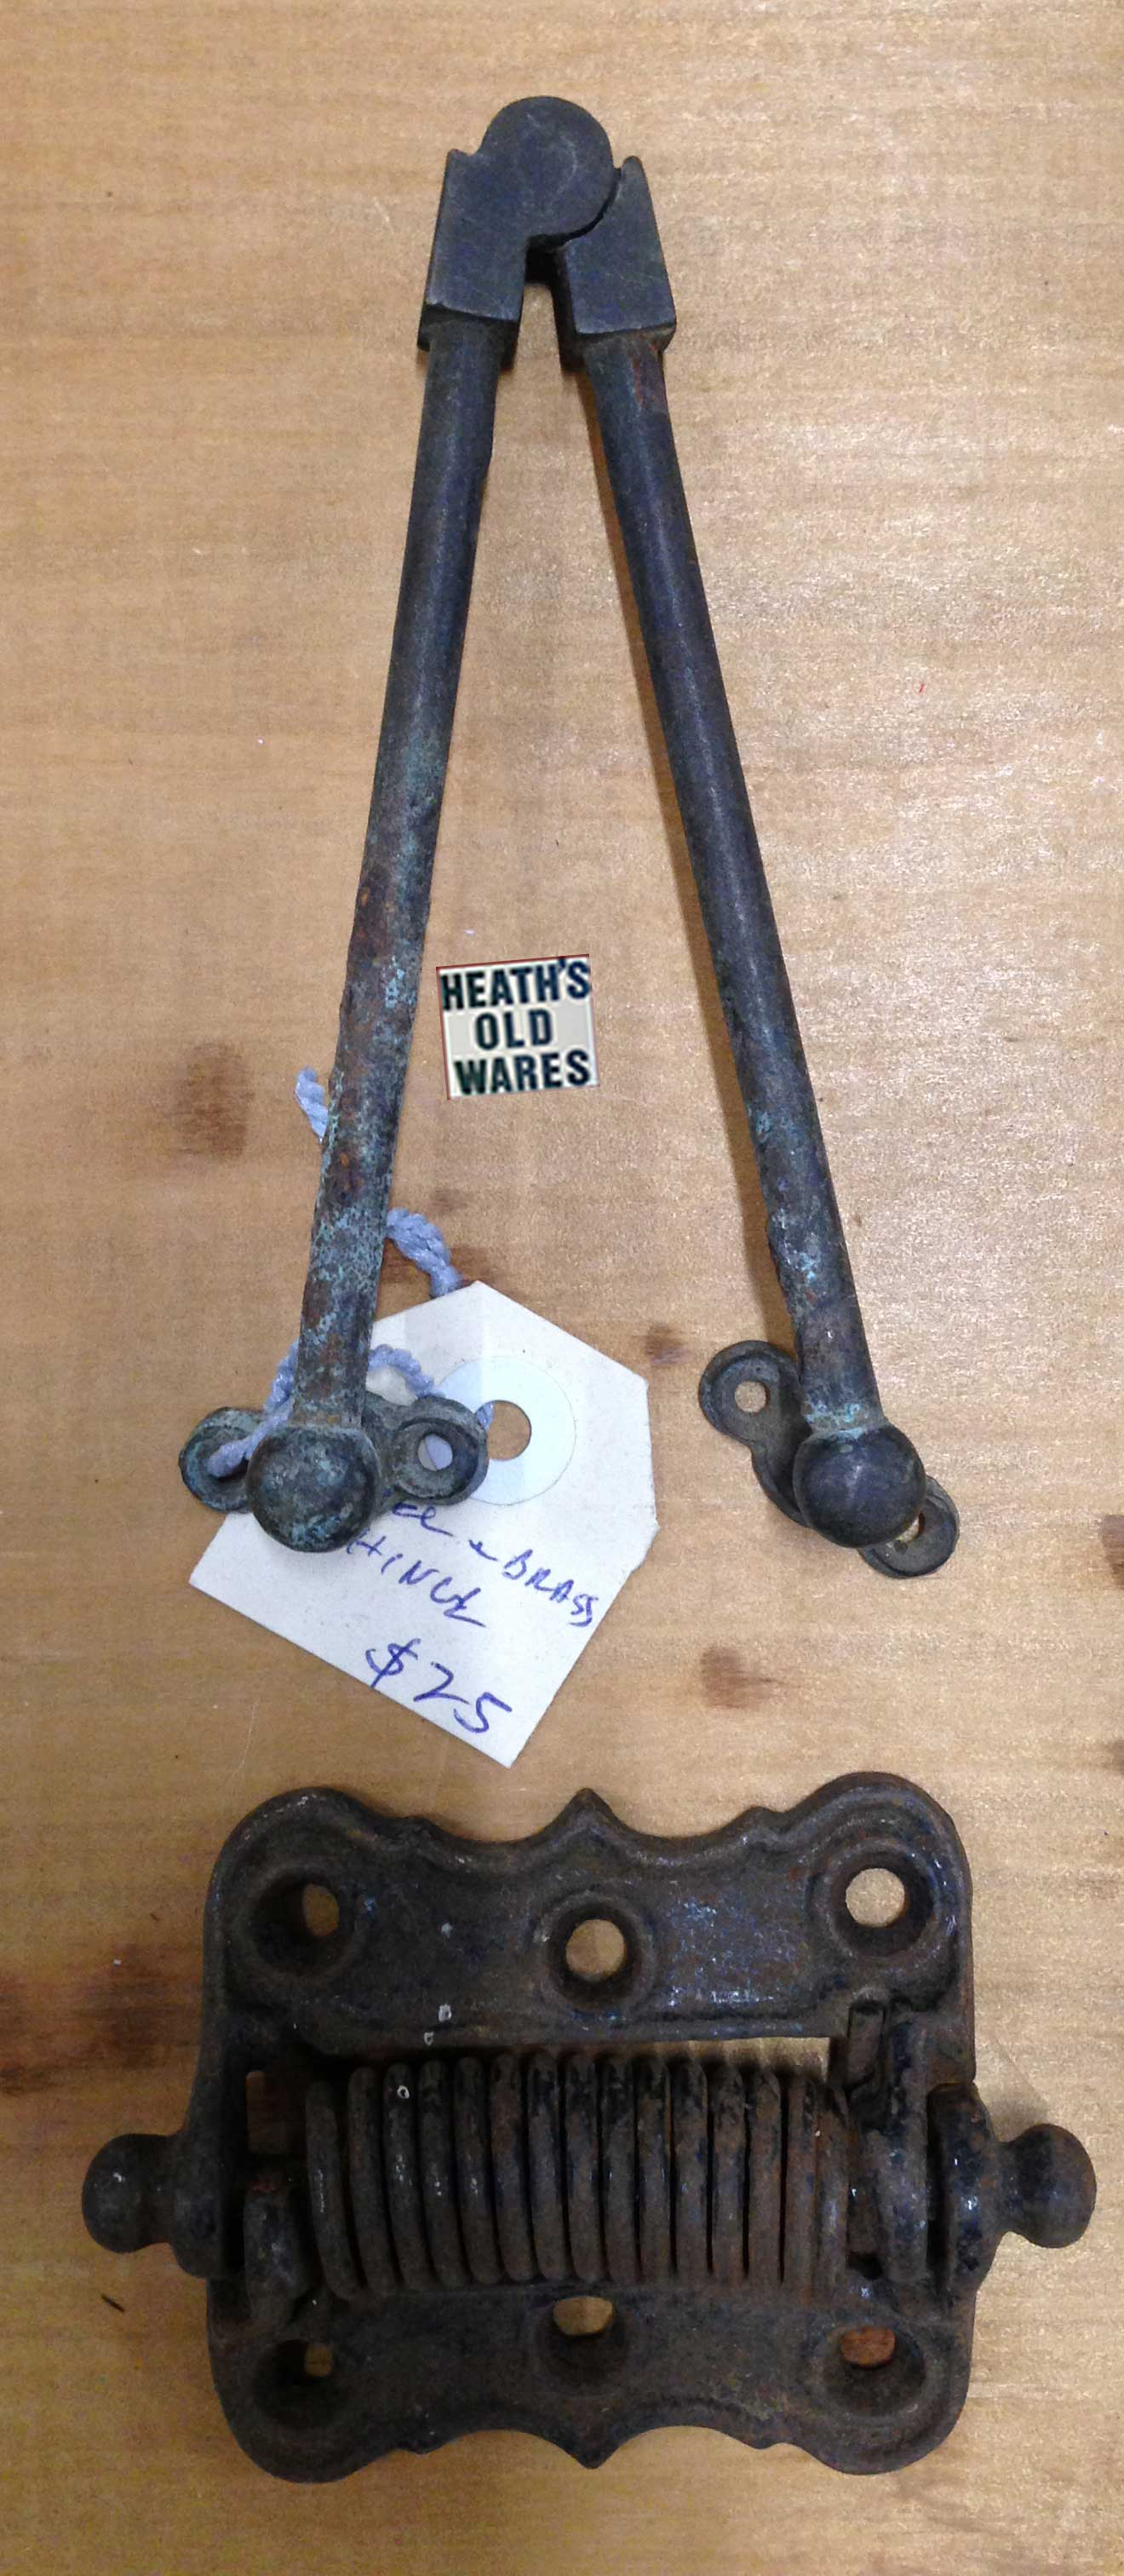 Antique door hardware for sale at Heaths Old Wares, Collectables & Industrial Antiques, 19-21 Broadway, Burringbar NSW 2483 Ph 0266771181